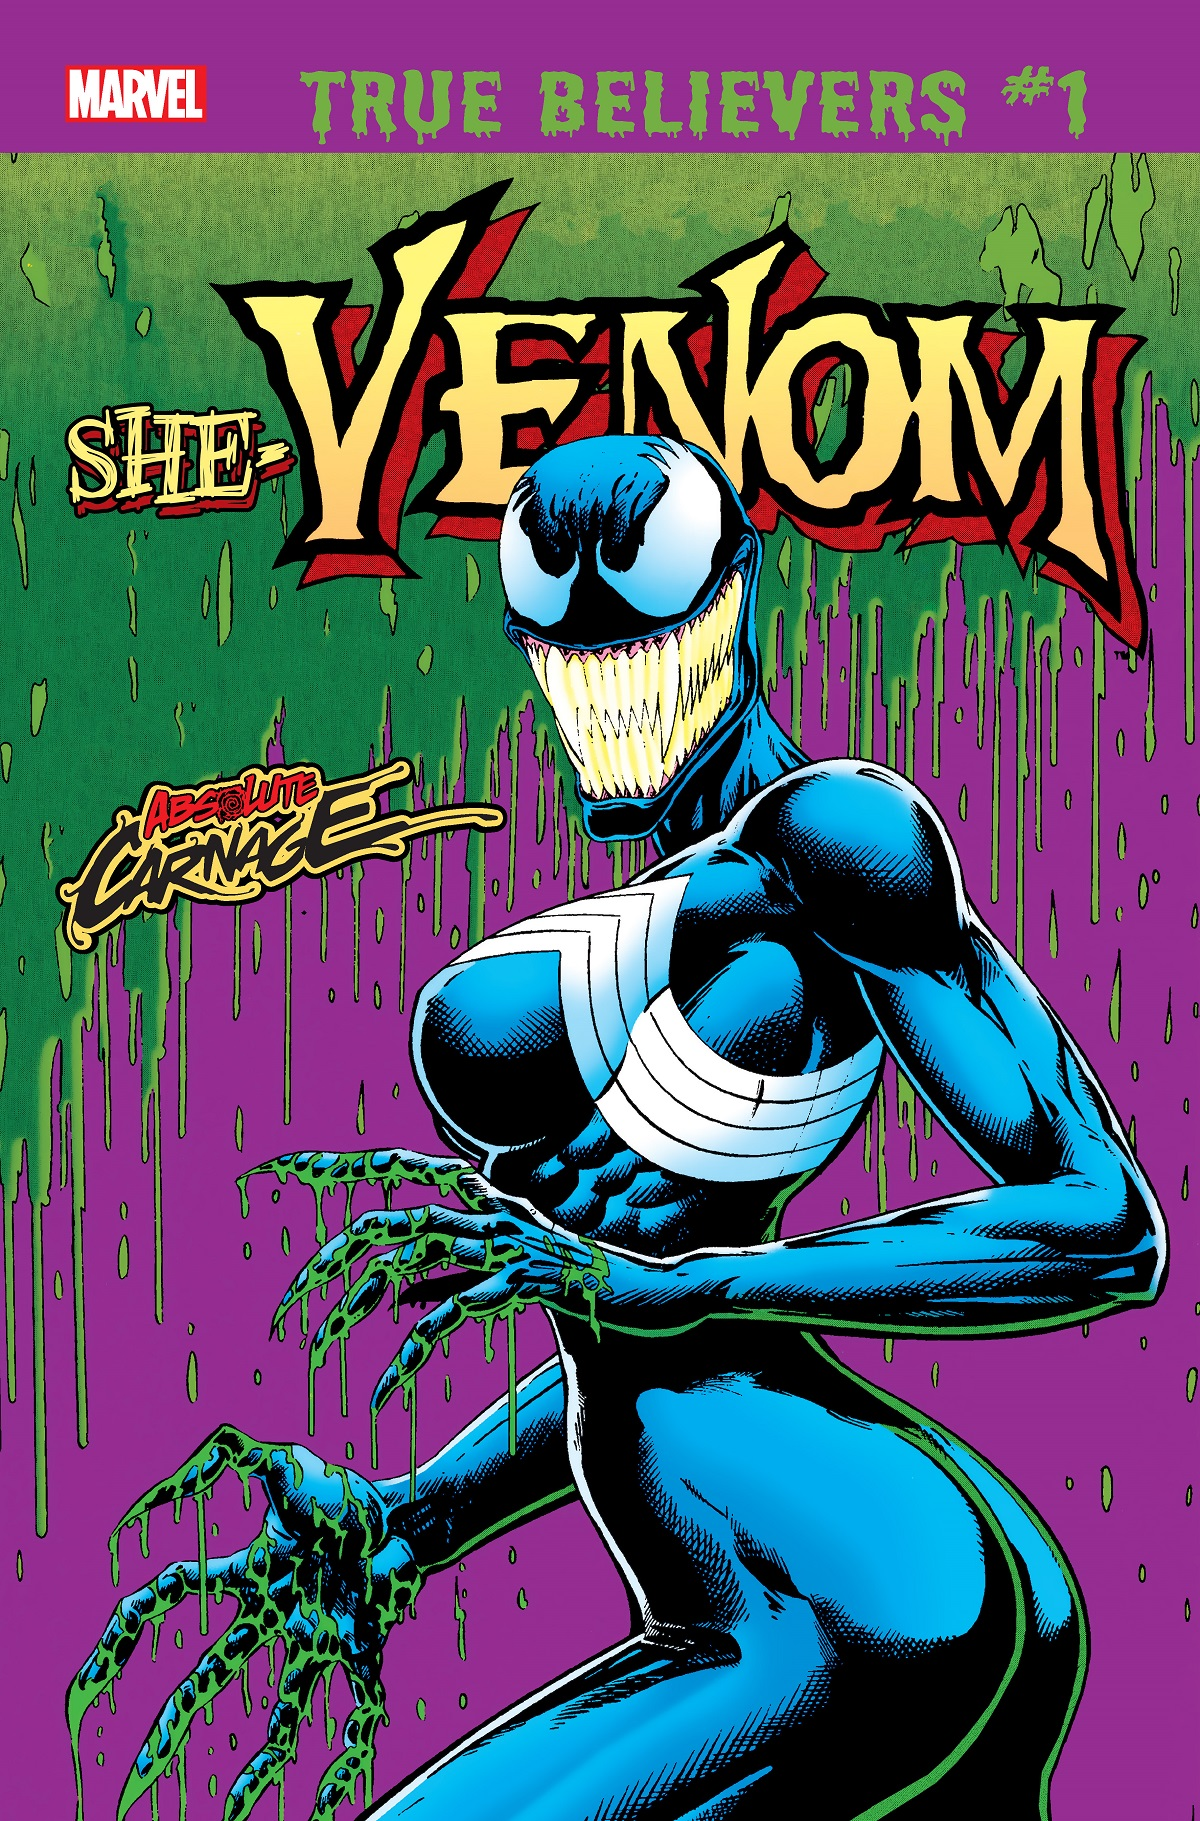 True Believers: Absolute Carnage - She-Venom (2019) #1